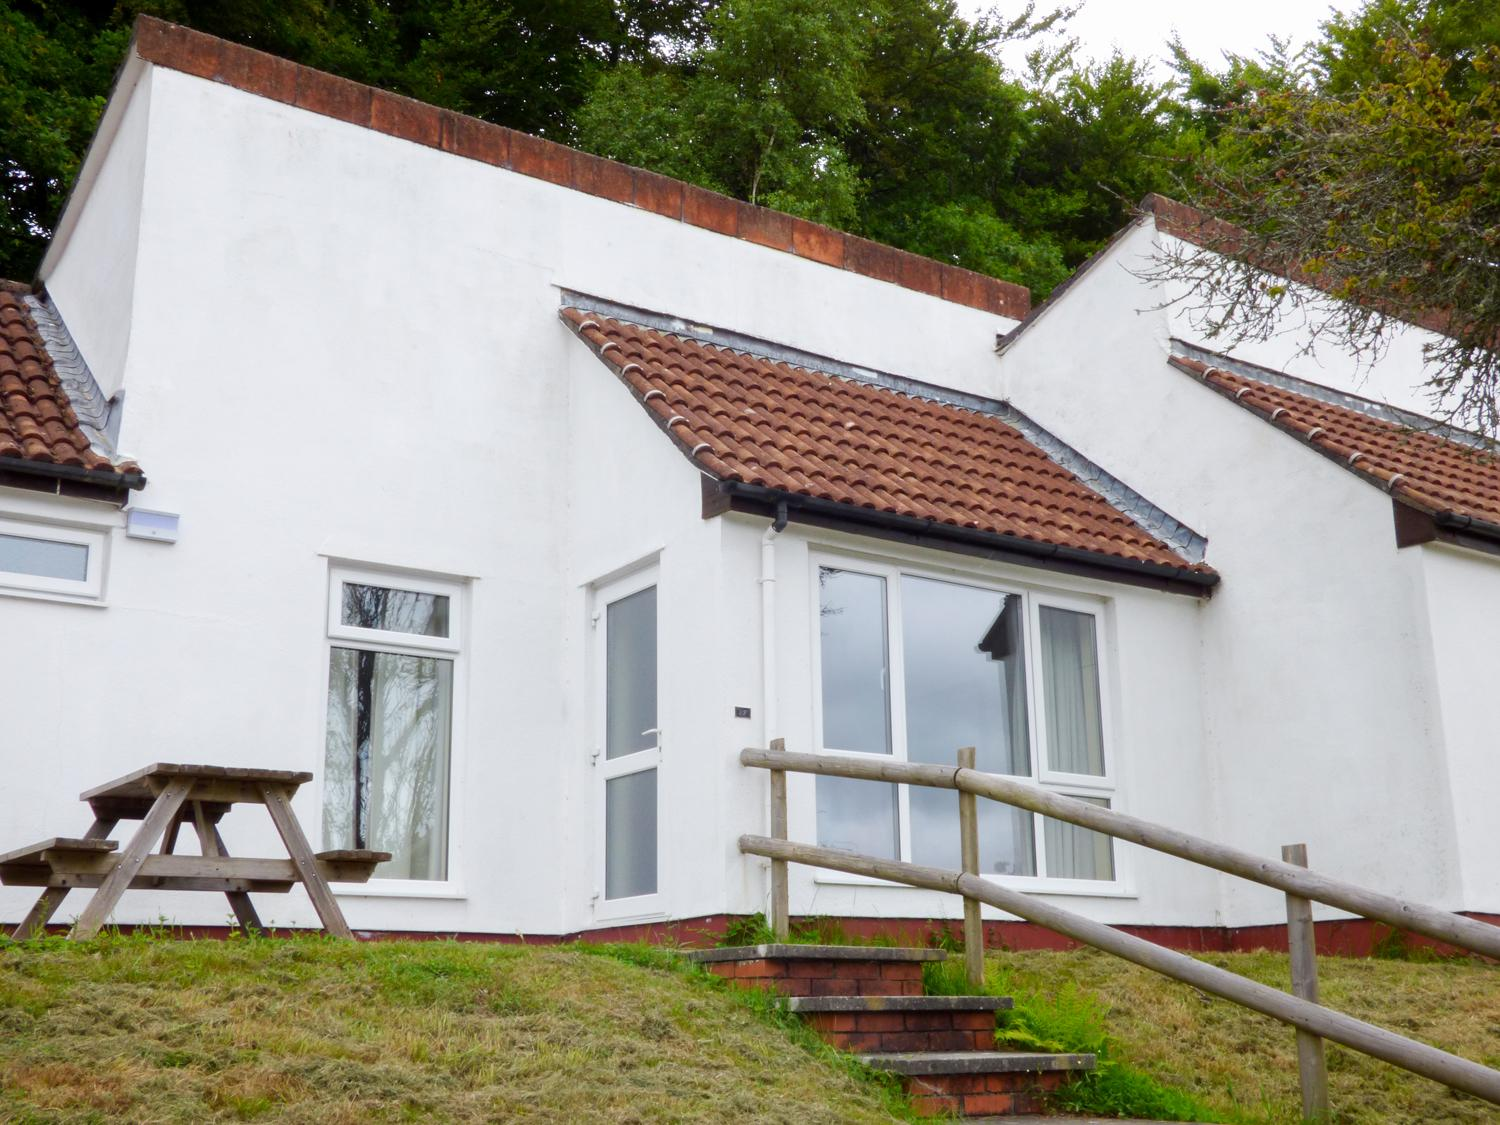 Holiday Cottage Reviews for 27 Manorcombe Bungalows - Holiday Cottage in Gunnislake, Cornwall inc Scilly